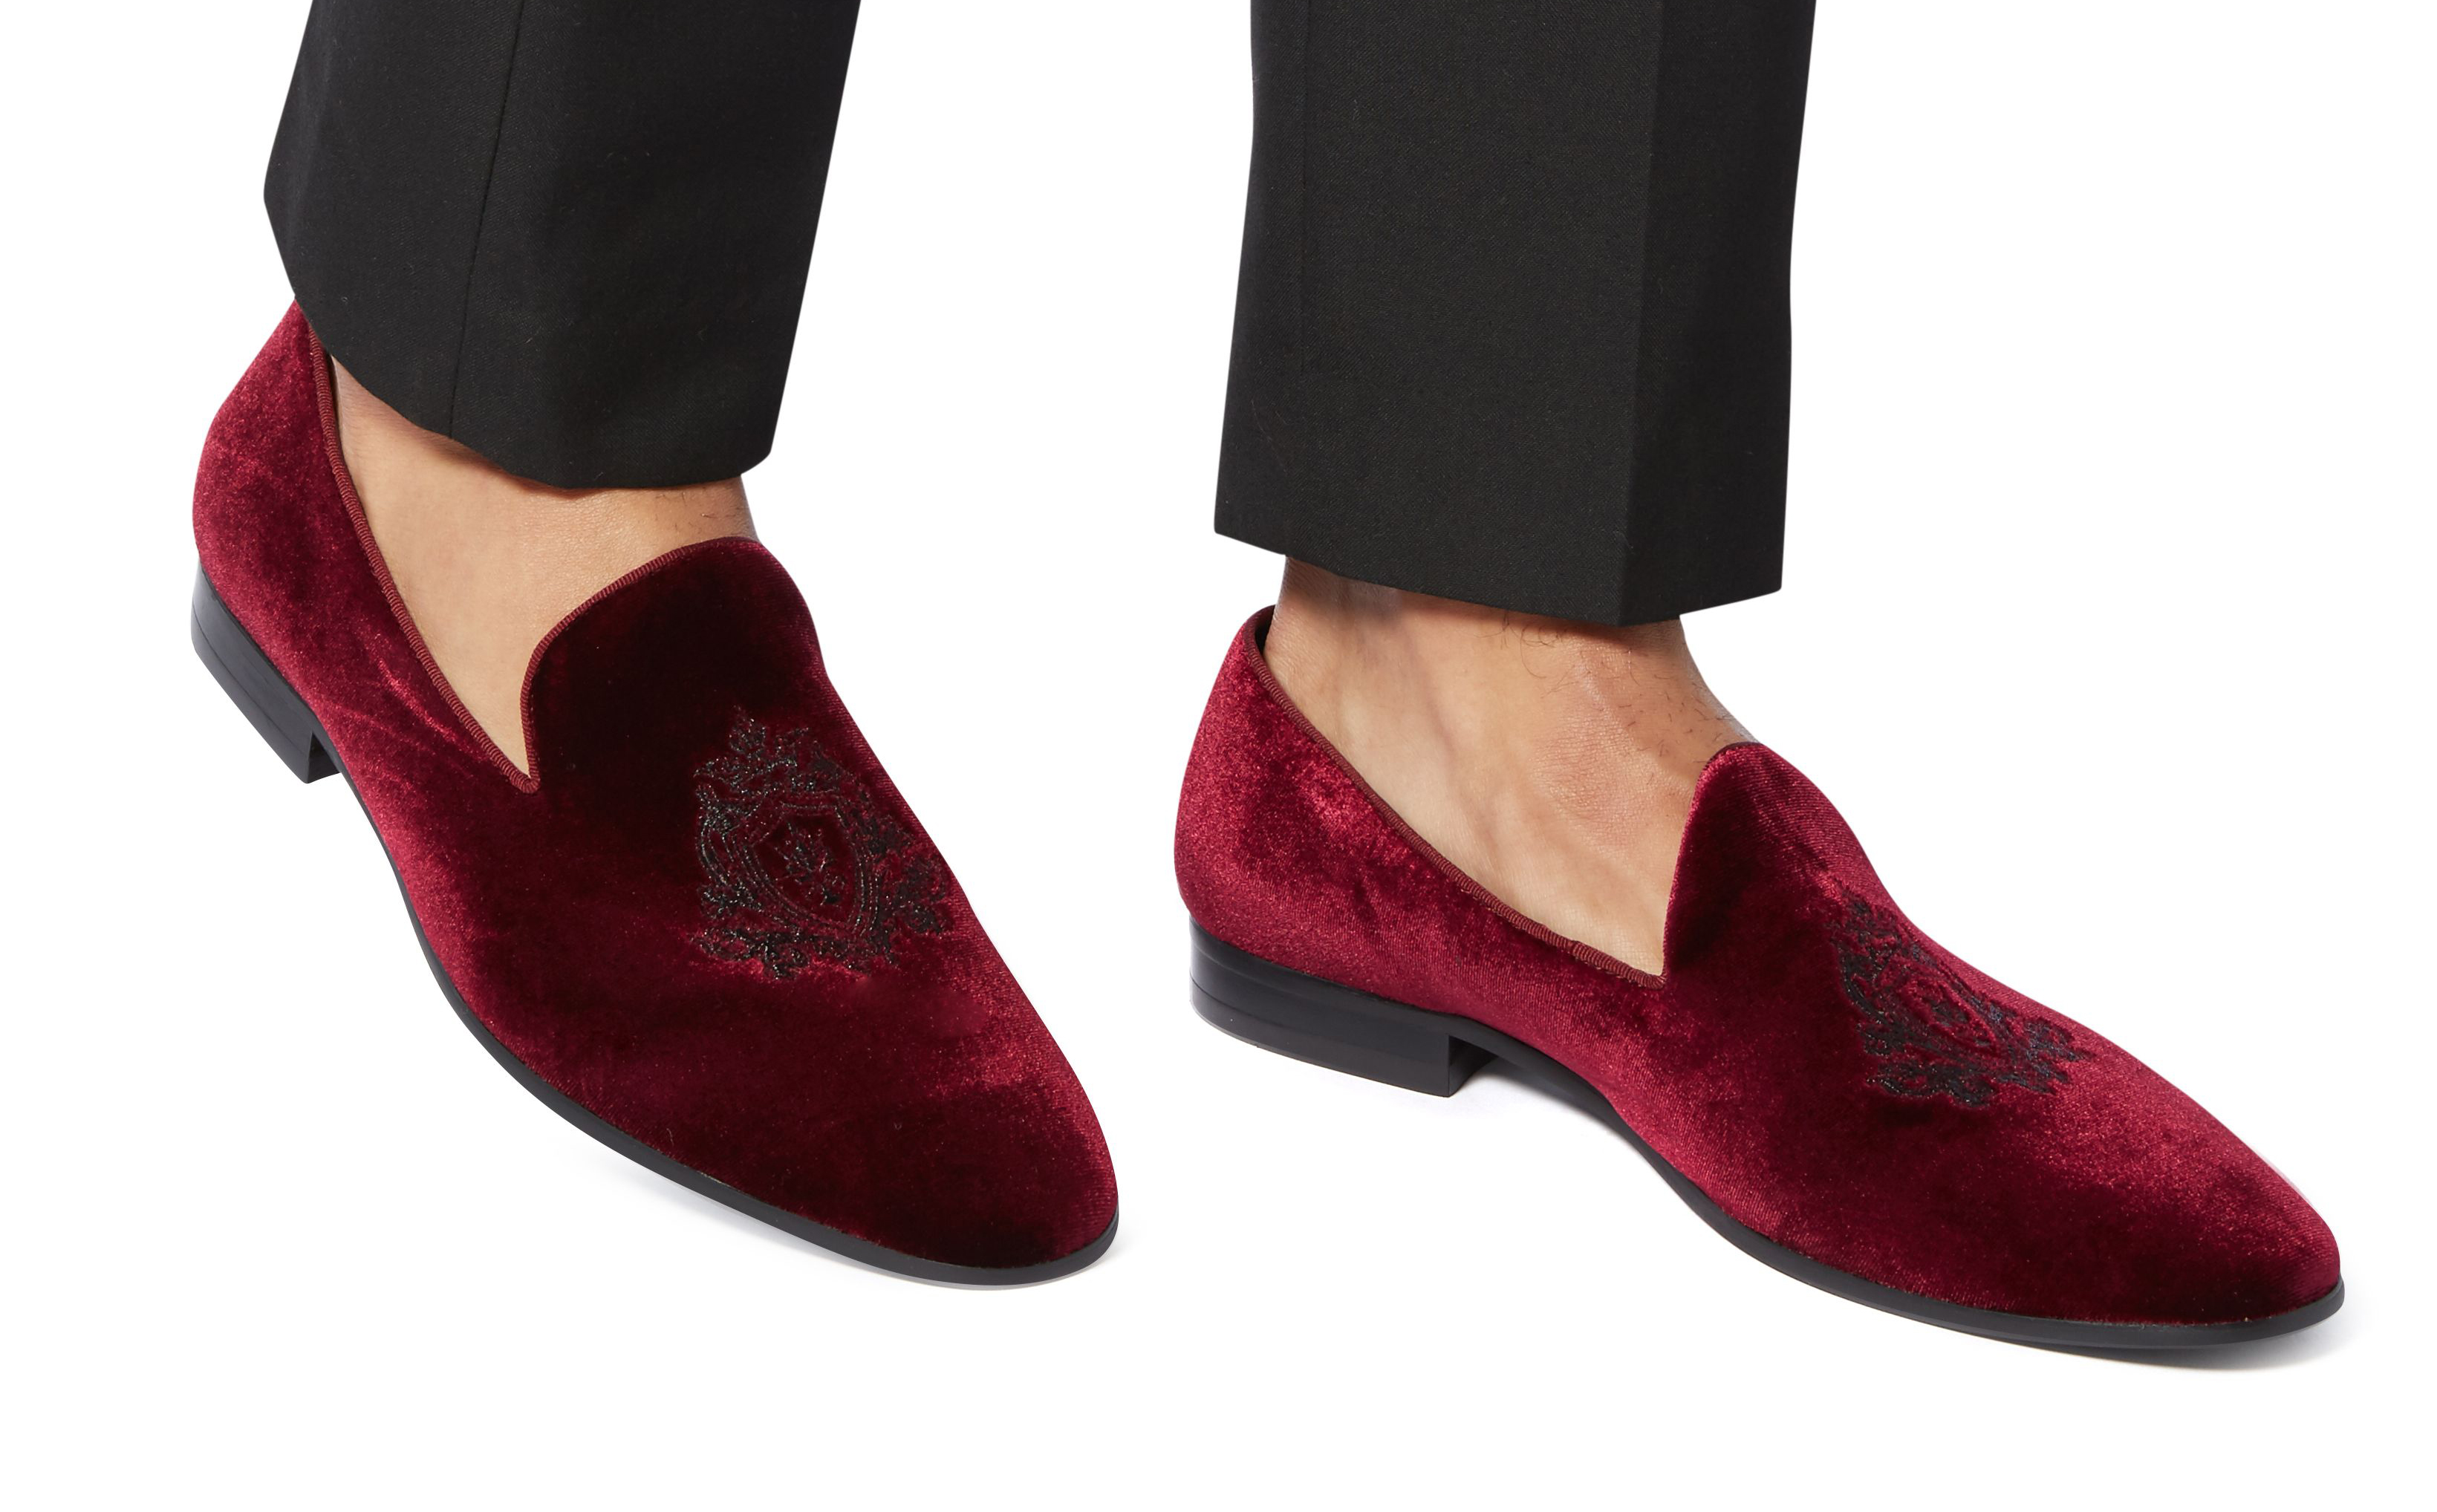 993654f712c The best men s loafers 2019  from New Romantic velvet to all-business  leather